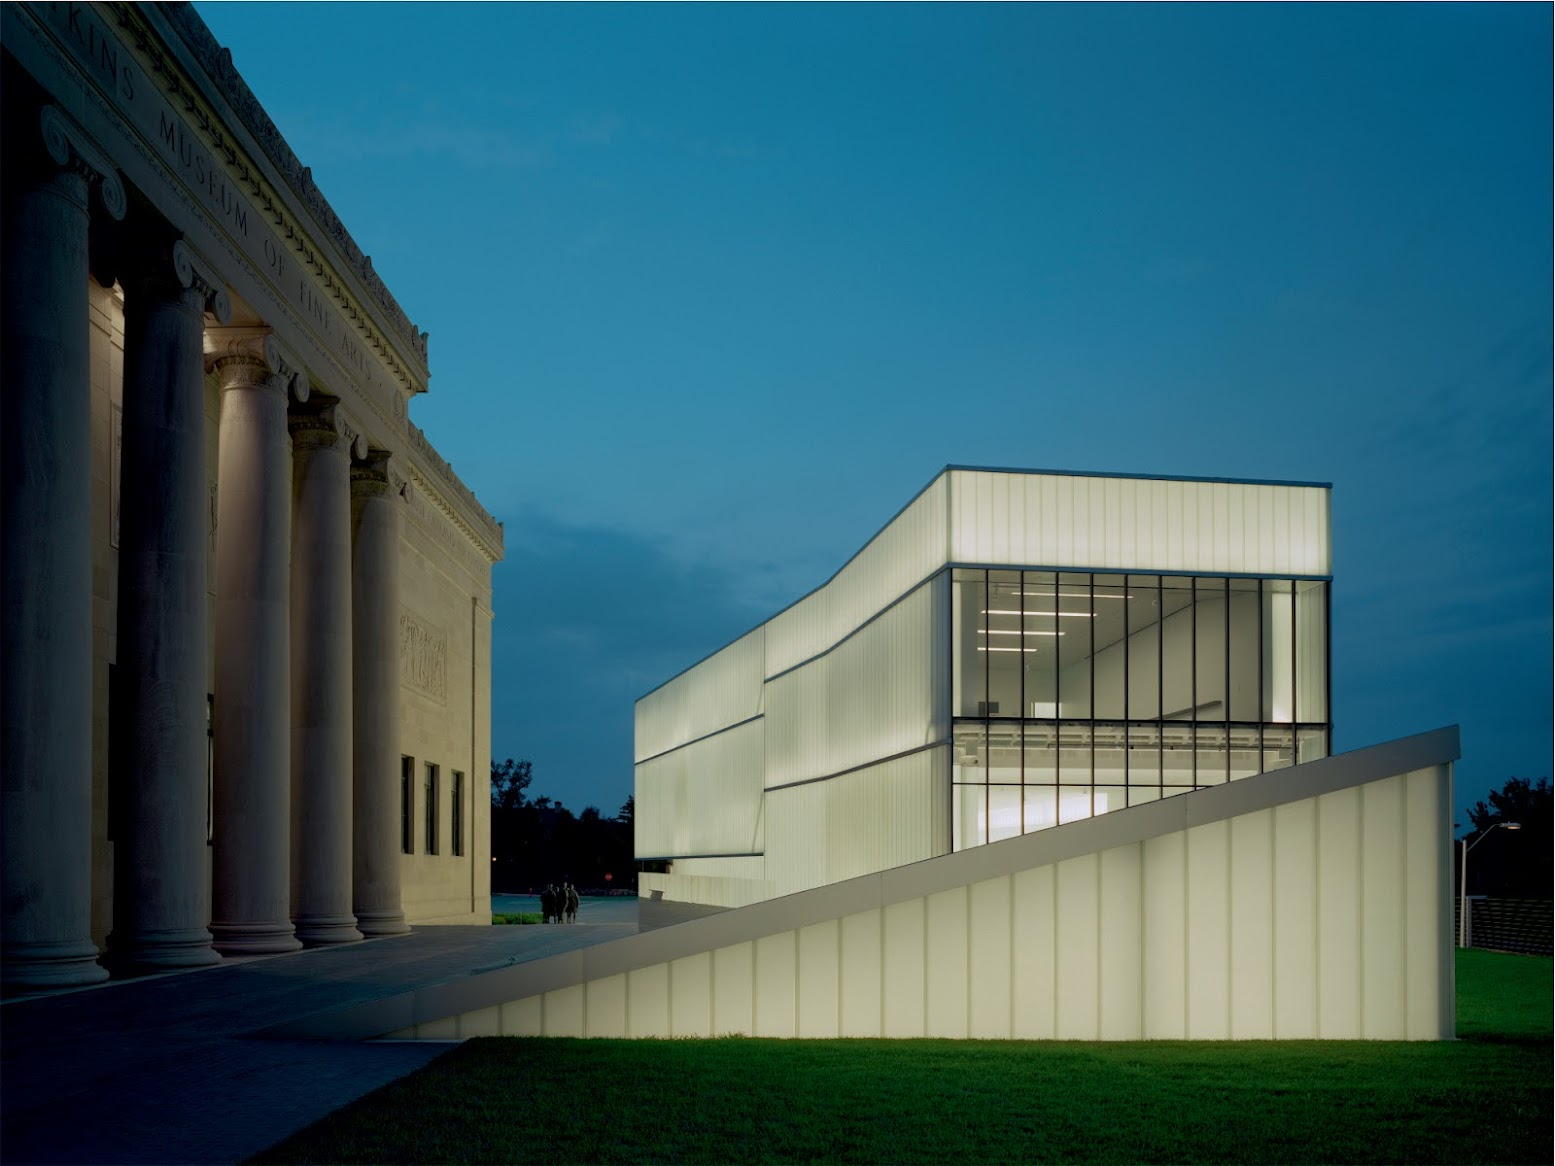 On 12th at Oak Eastbound, Kansas City, Missouri 64106, Stati Uniti: [NELSON ATKINS MUSEUM OF ART BY STEVEN HOLL ARCHITECTS]